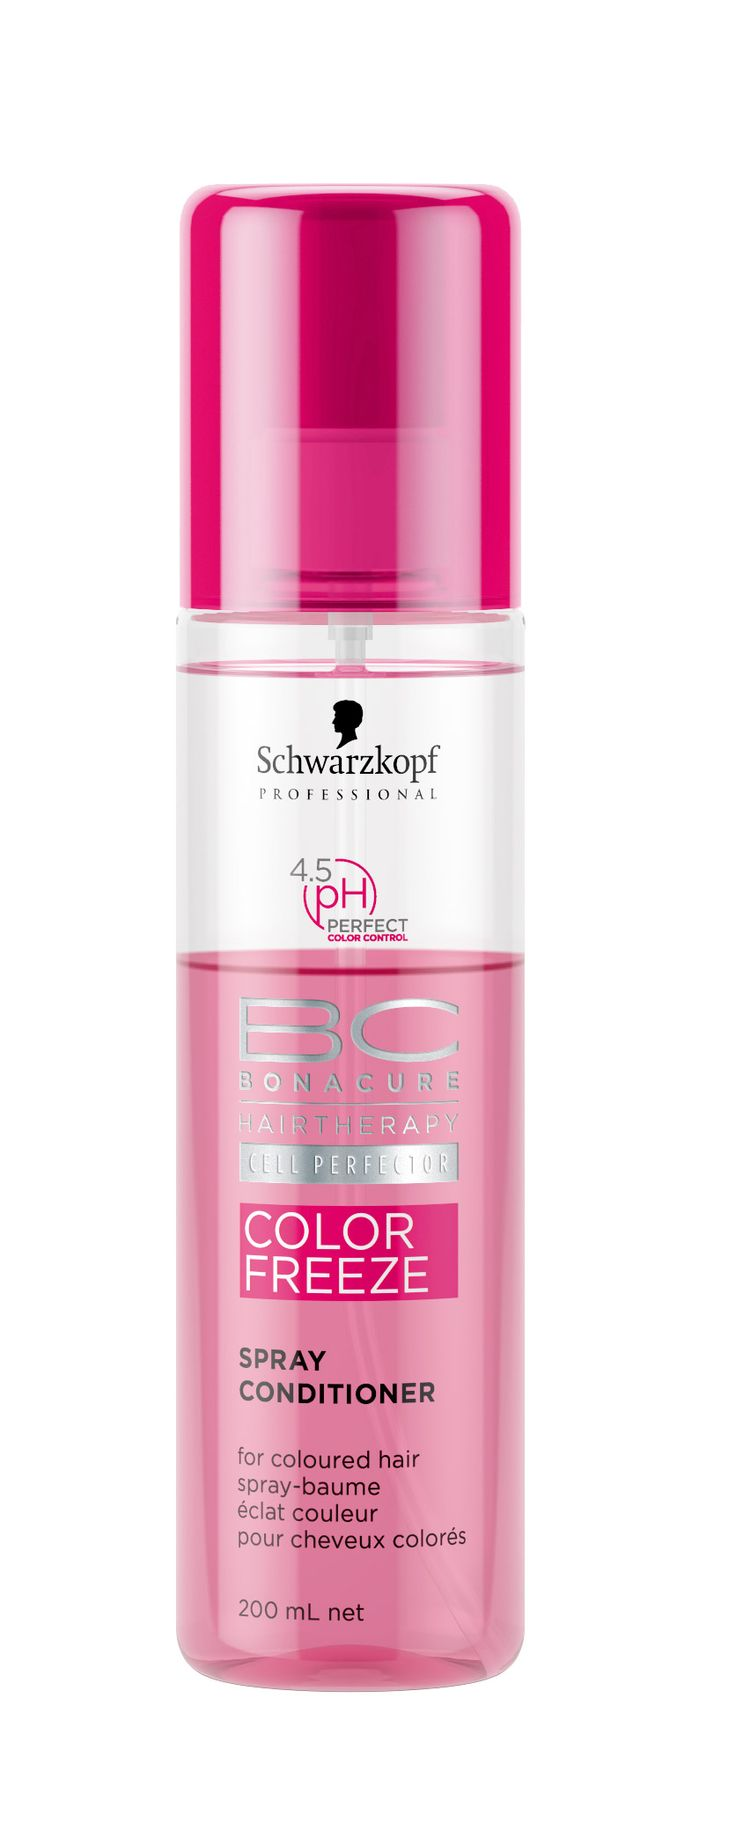 Schwarzkopf Professional BC Hairtherapy Cell Perfector Color Freeze - 4.5 pH Perfect Color Control - Spray Conditioner 200ml.